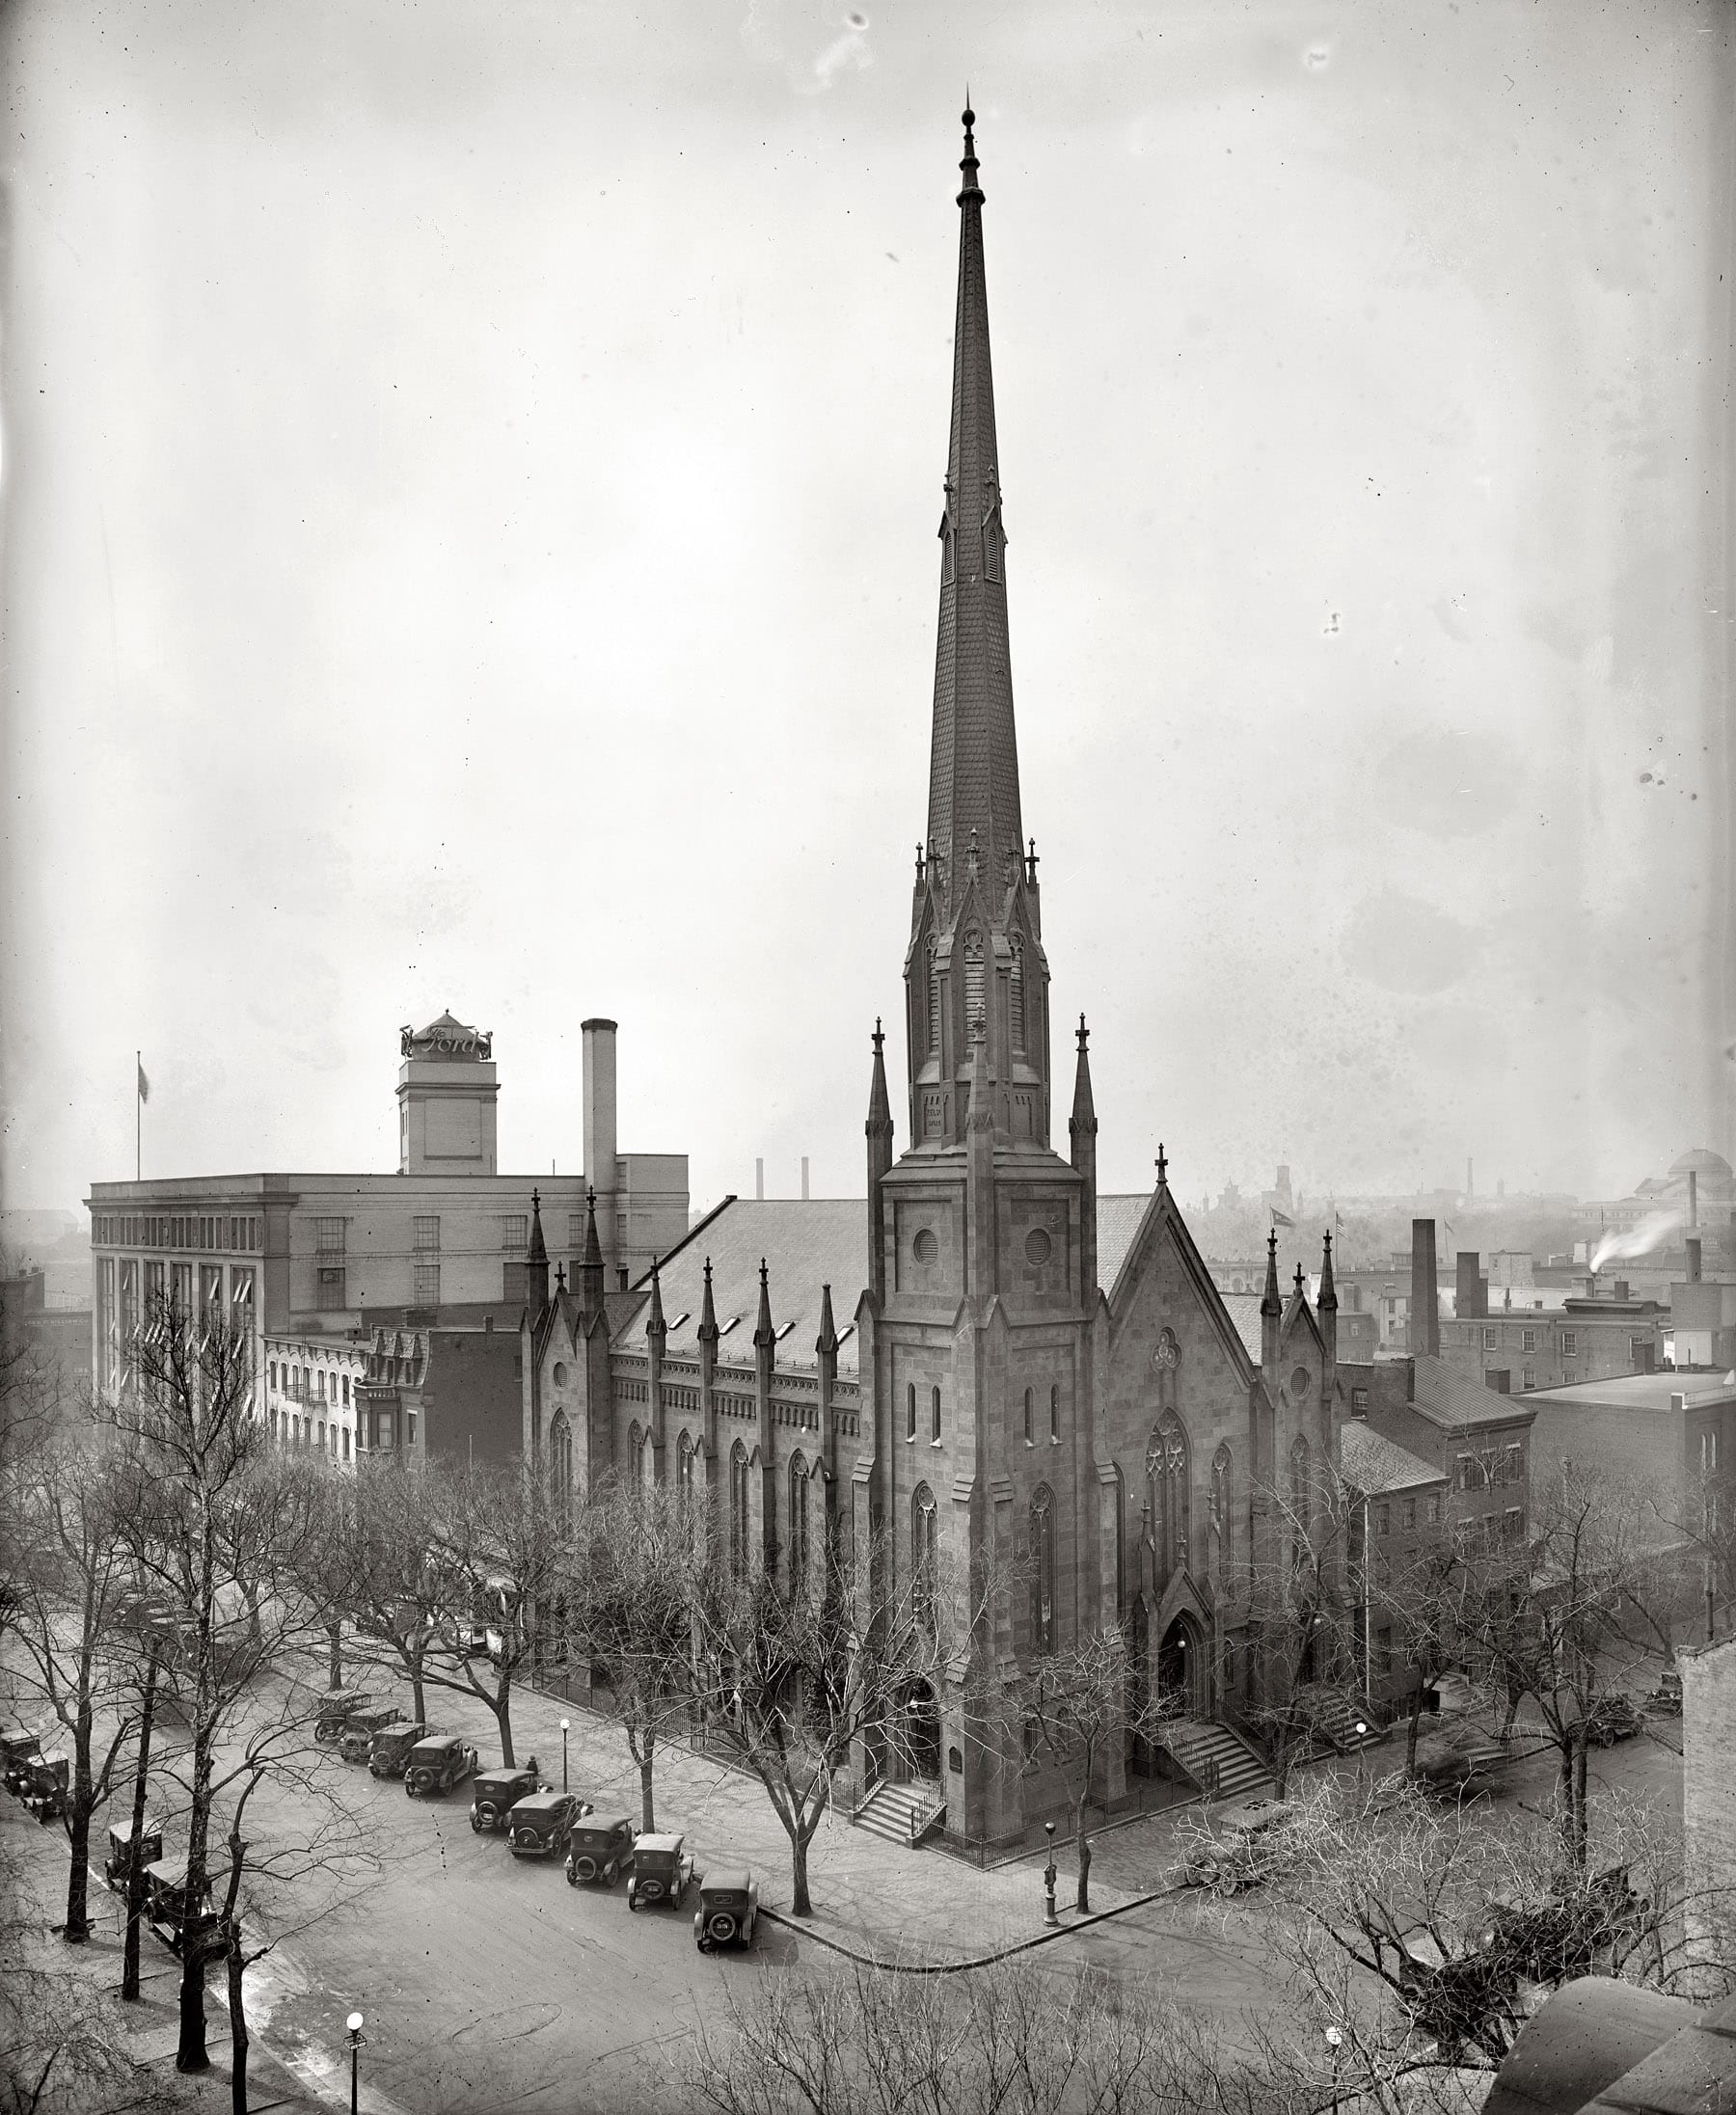 "Circa 1924, ""Metropolitan Methodist Church, C Street, Washington, D.C."" And the Ford building next door. National Photo Company glass negative. View full size. The church, at C Street NW and John Marshall Place, was abandoned and razed after the congregation moved to its Nebraska Avenue location in the 1930s. The 1905 Ford Motor Co. building on Pennsylvania Avenue was torn down in 1980."